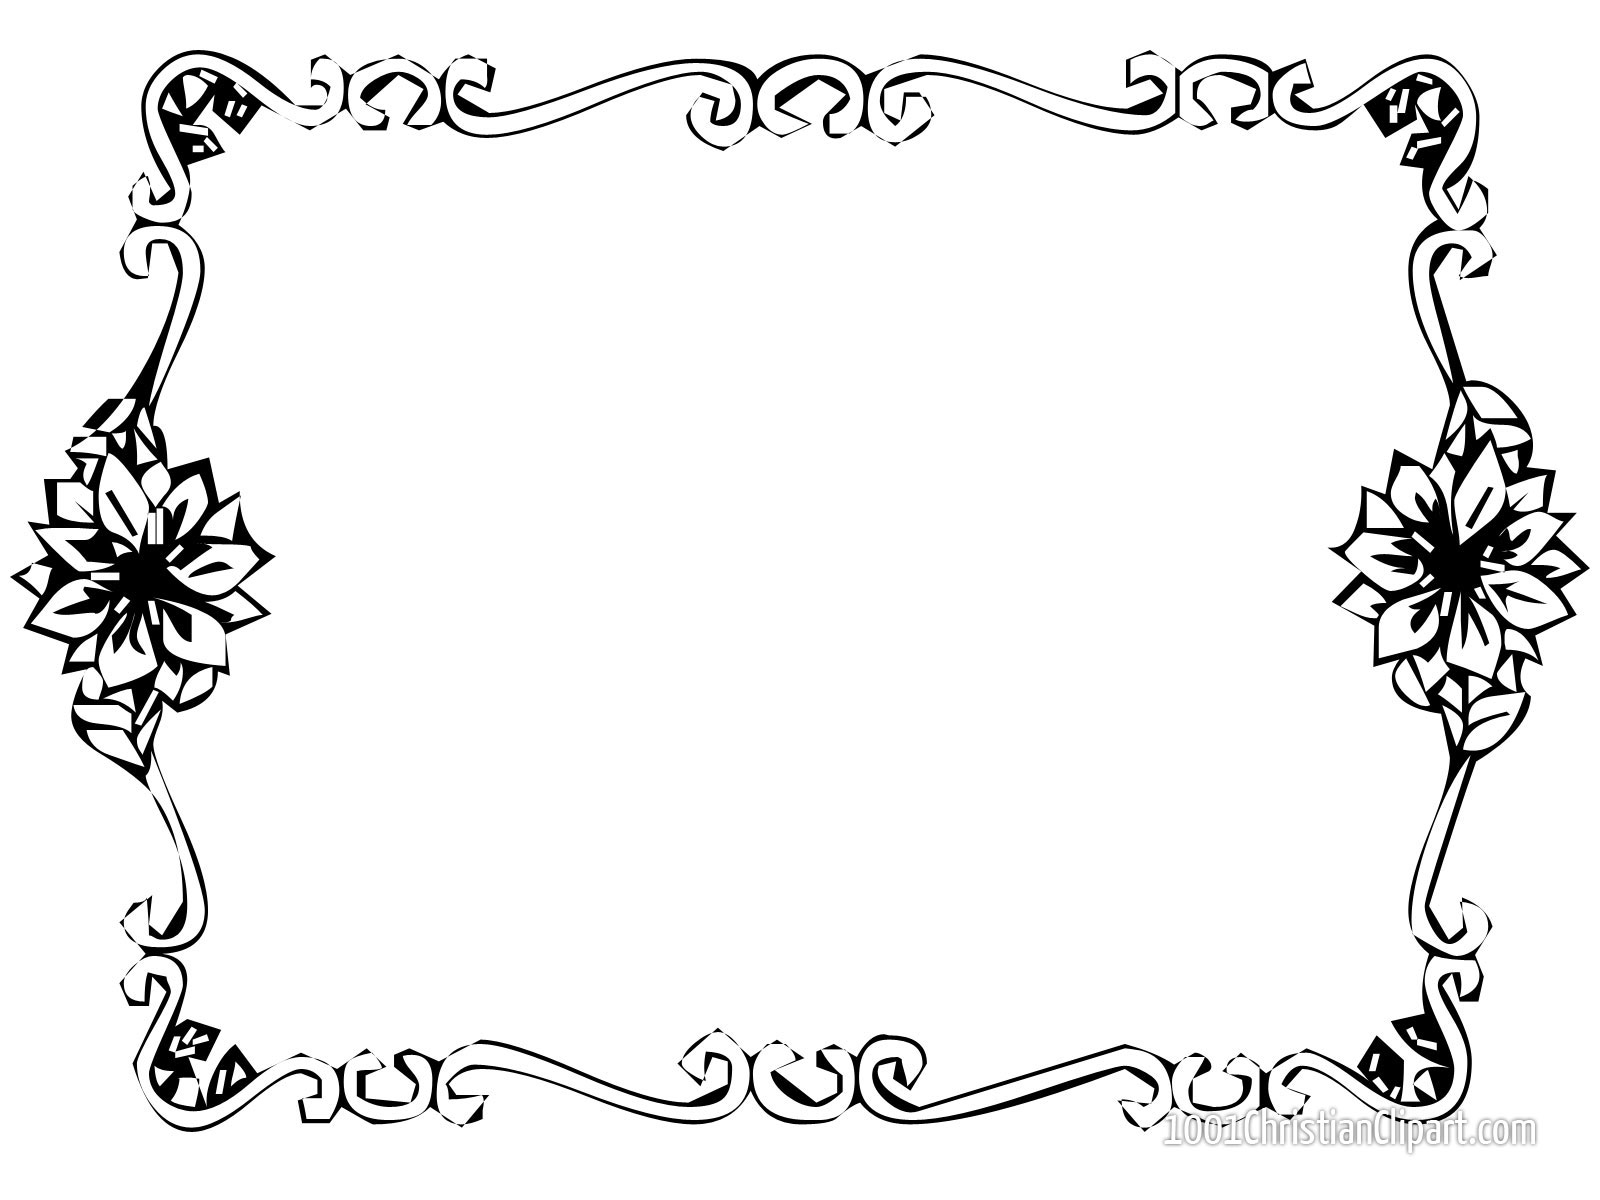 Download clipart borders picture transparent library Free DOWNLOAD BORDER, Download Free Clip Art, Free Clip Art on ... picture transparent library